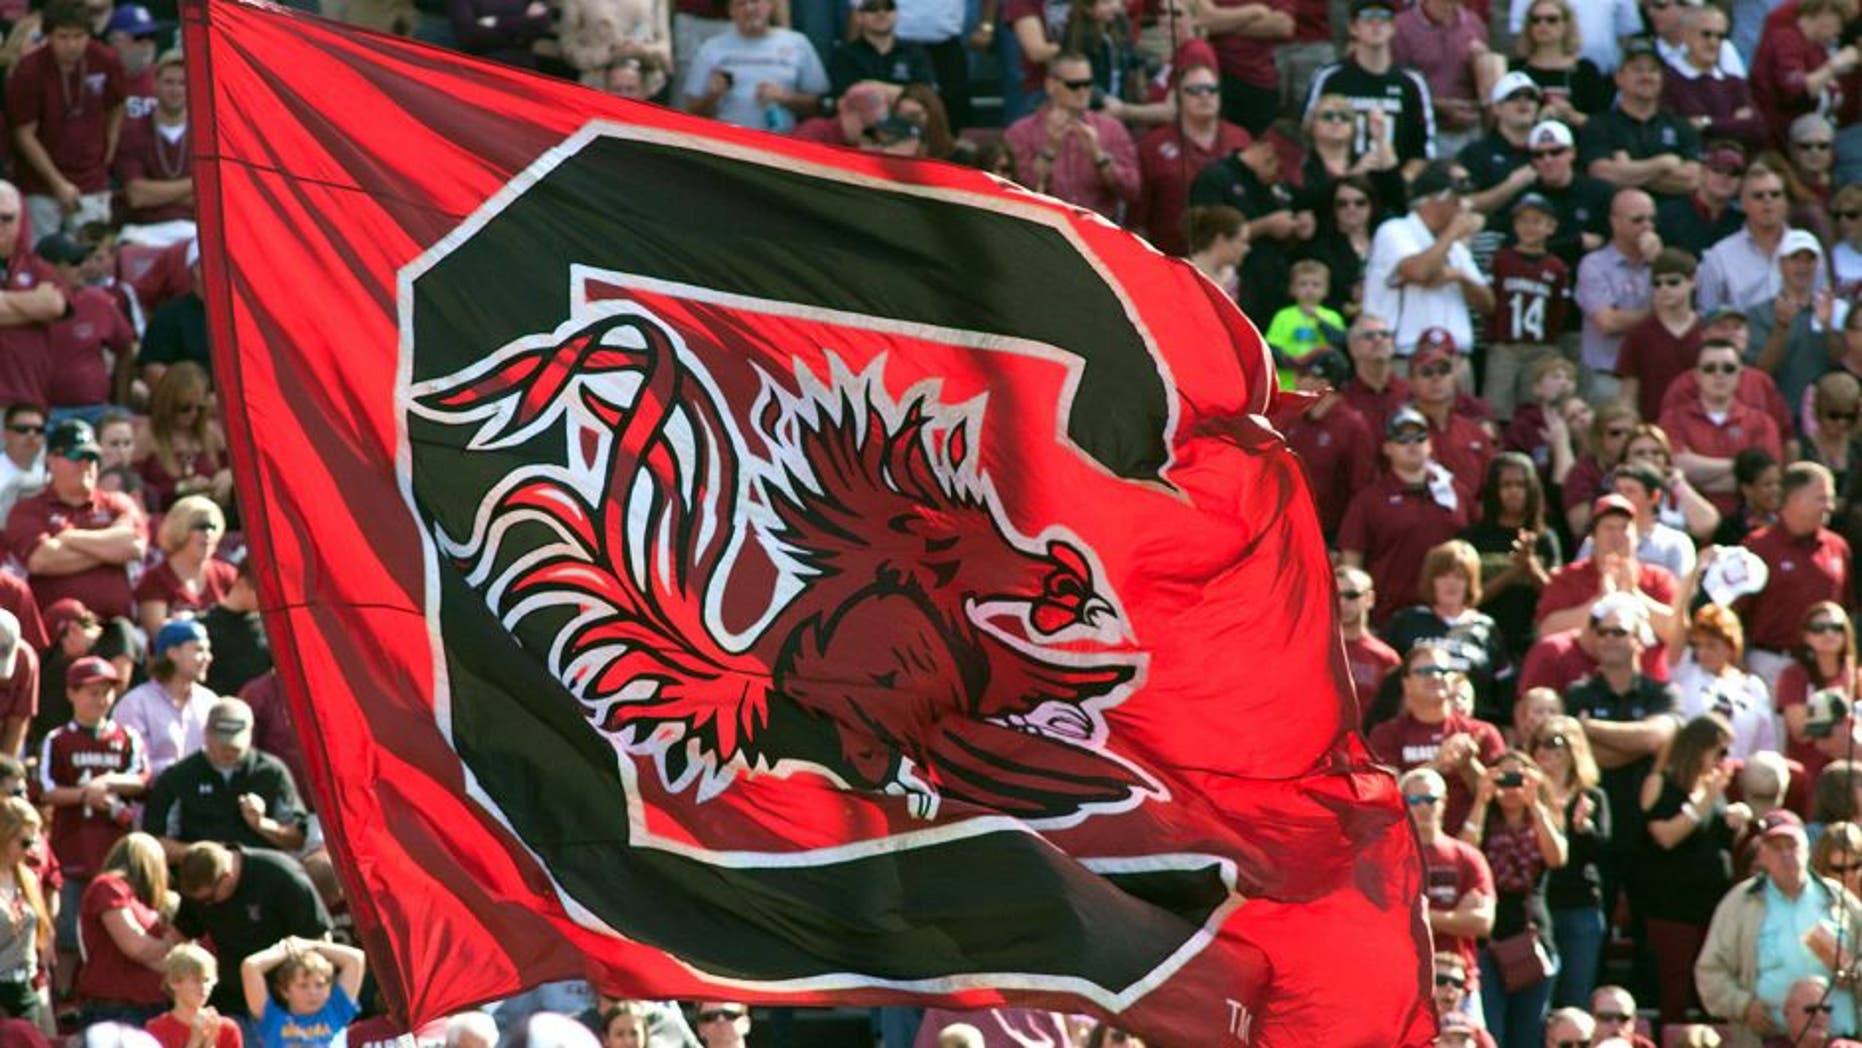 Nov 2, 2013; Columbia, SC, USA; The South Carolina Gamecocks flag is ran across the endzone after a score during the game against the Mississippi State Bulldogs at Williams-Brice Stadium. The Gamecocks defeated the Bulldogs 34-16. Mandatory Credit: Jeremy Brevard-USA TODAY Sports